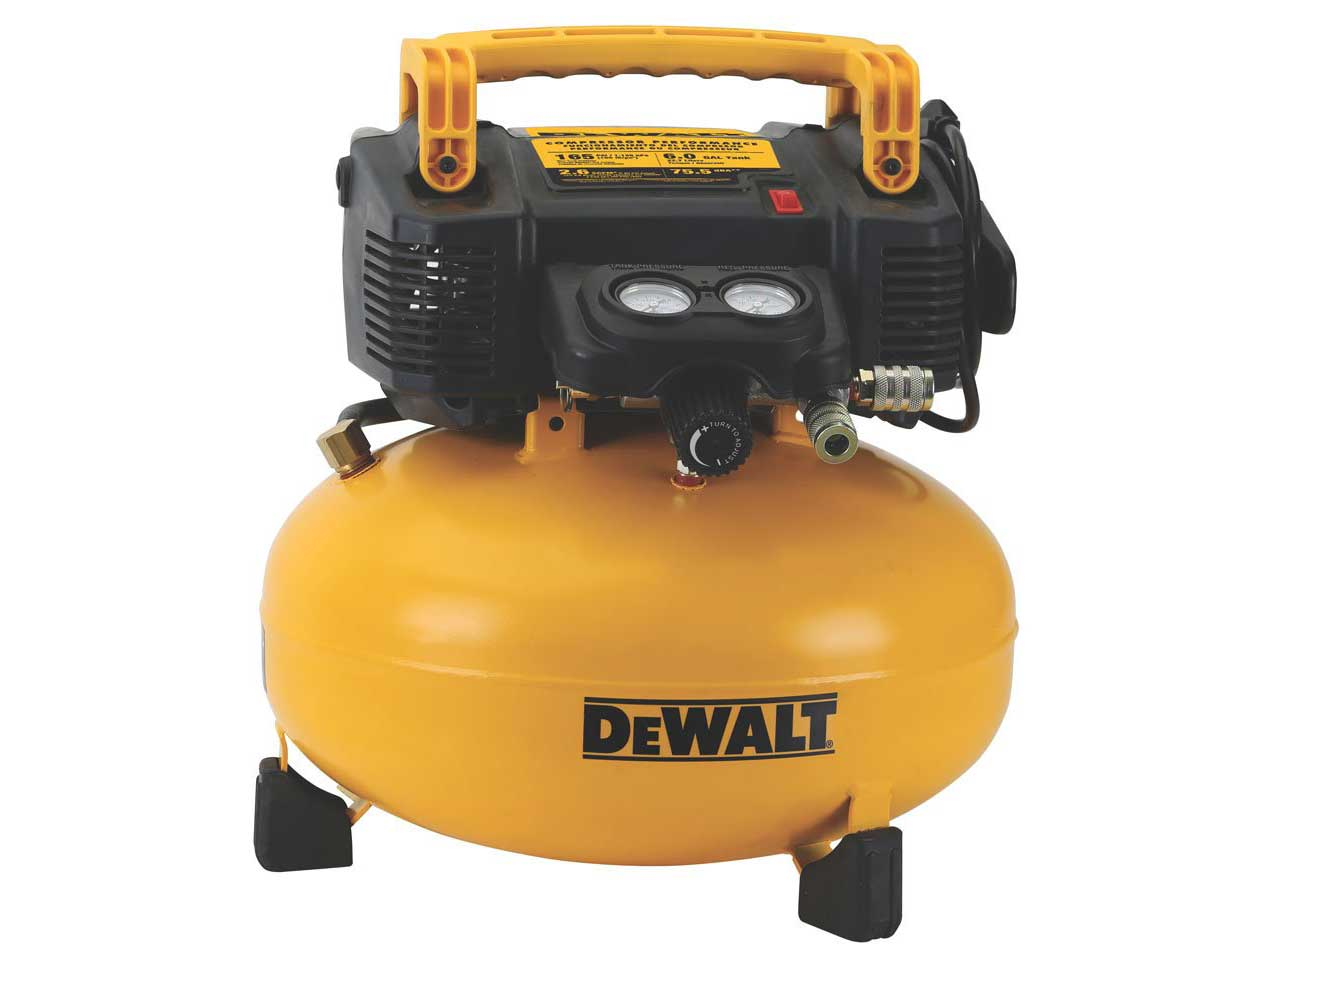 DEWALT Pancake Air Compressor